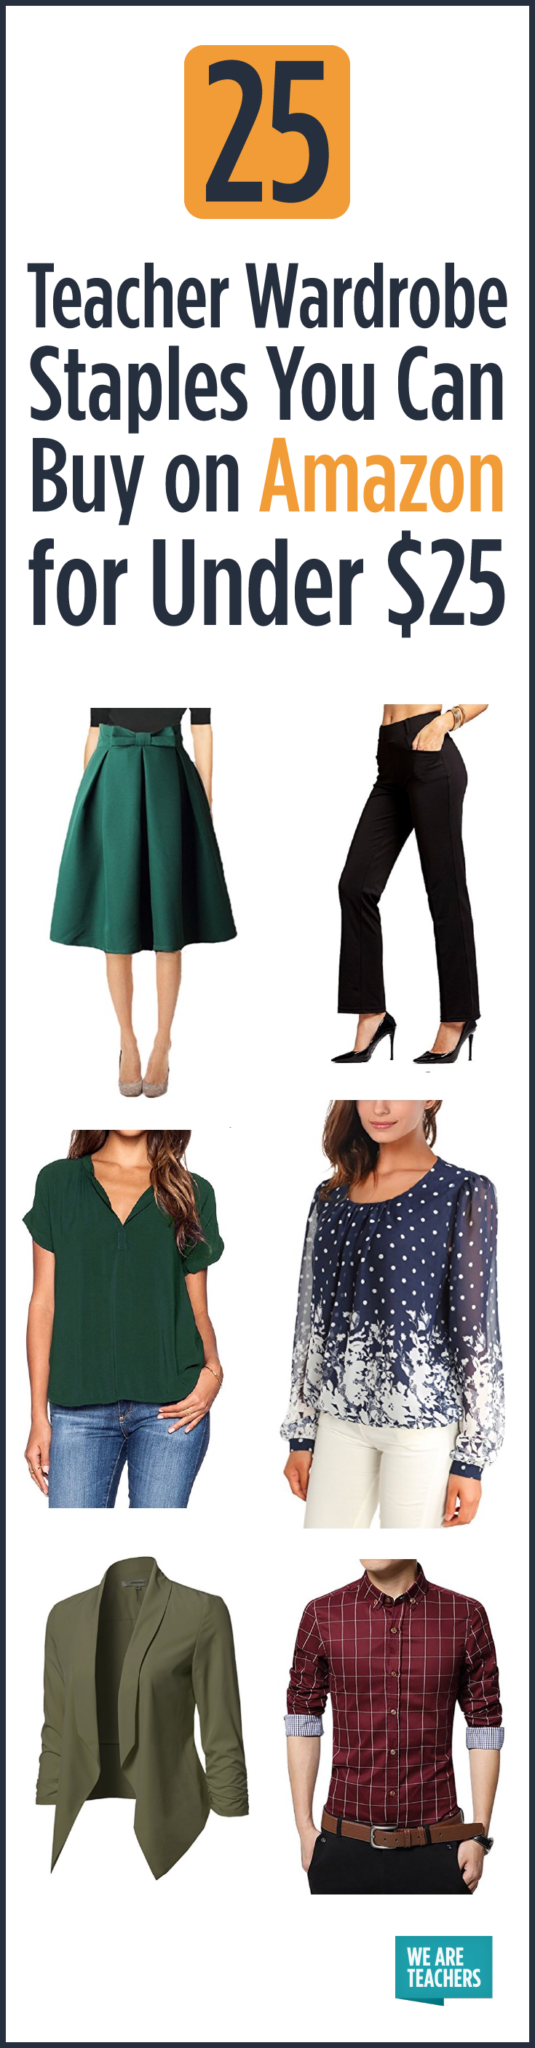 3a97ee009b6ae 25 Teacher Wardrobe Staples You Can Buy on Amazon for Under $30 ...